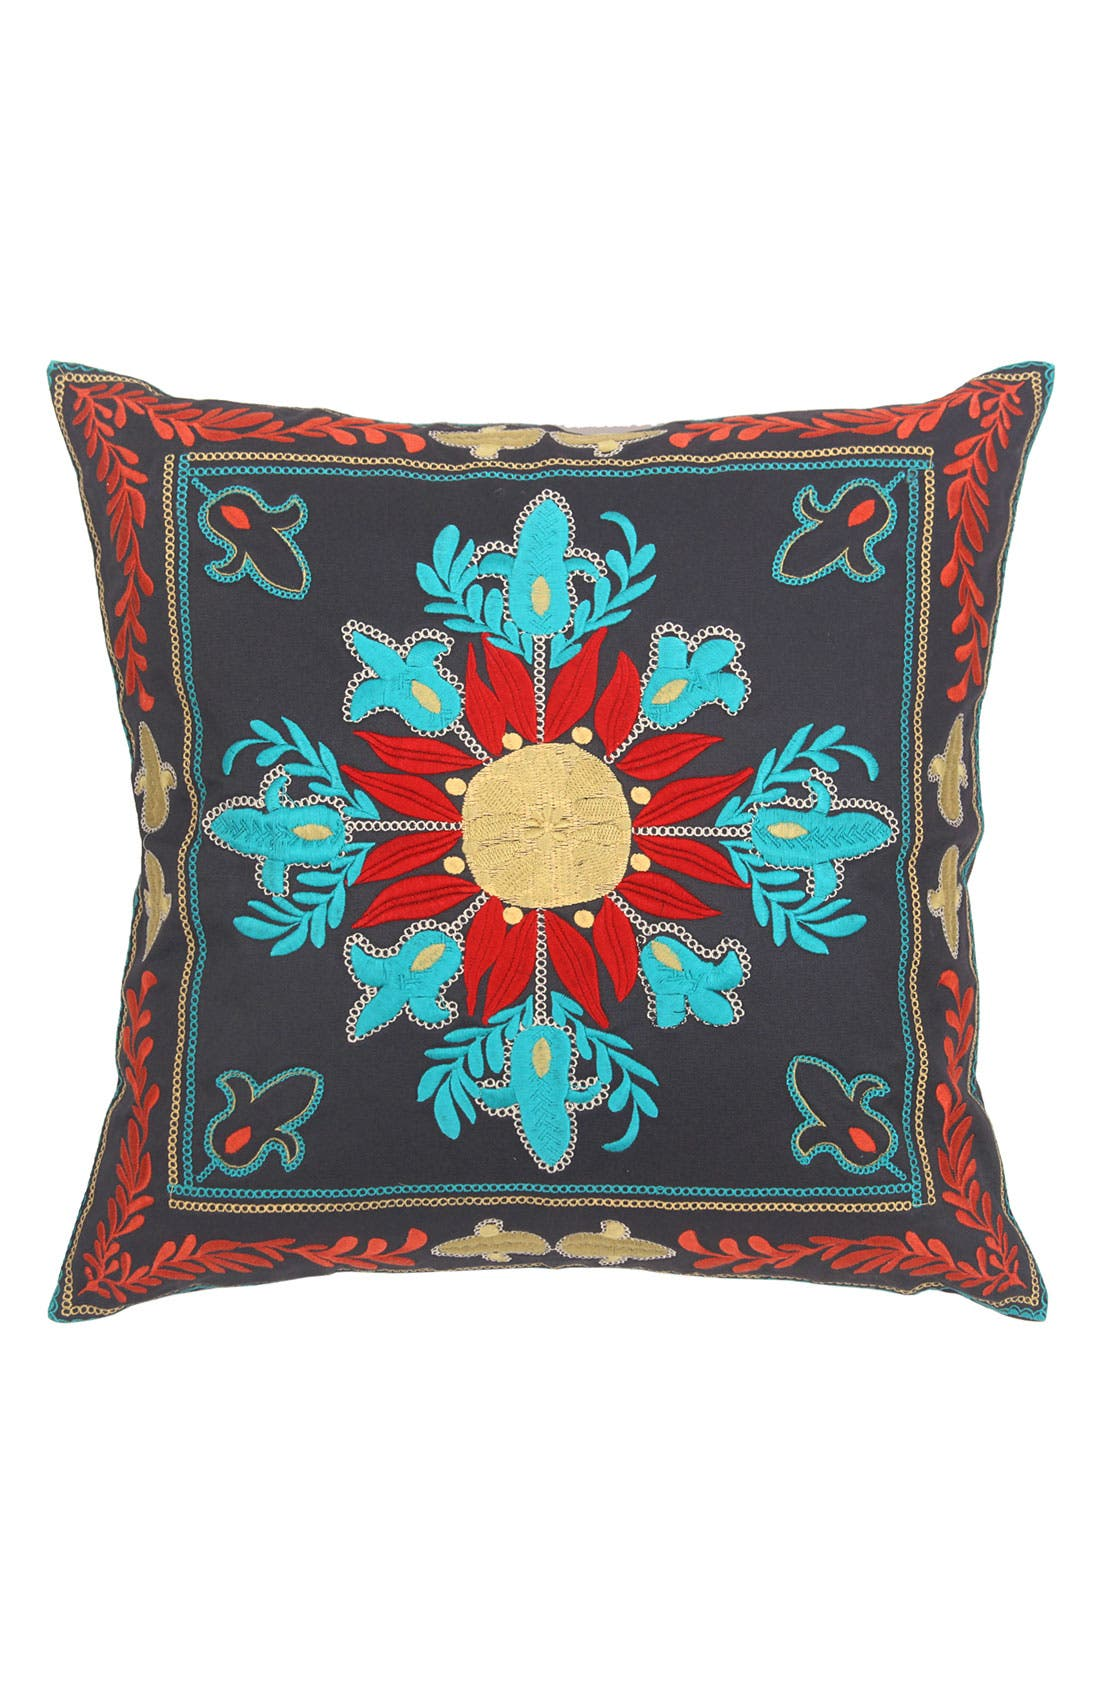 Alternate Image 1 Selected - Blissliving Home 'Samsara' Pillow